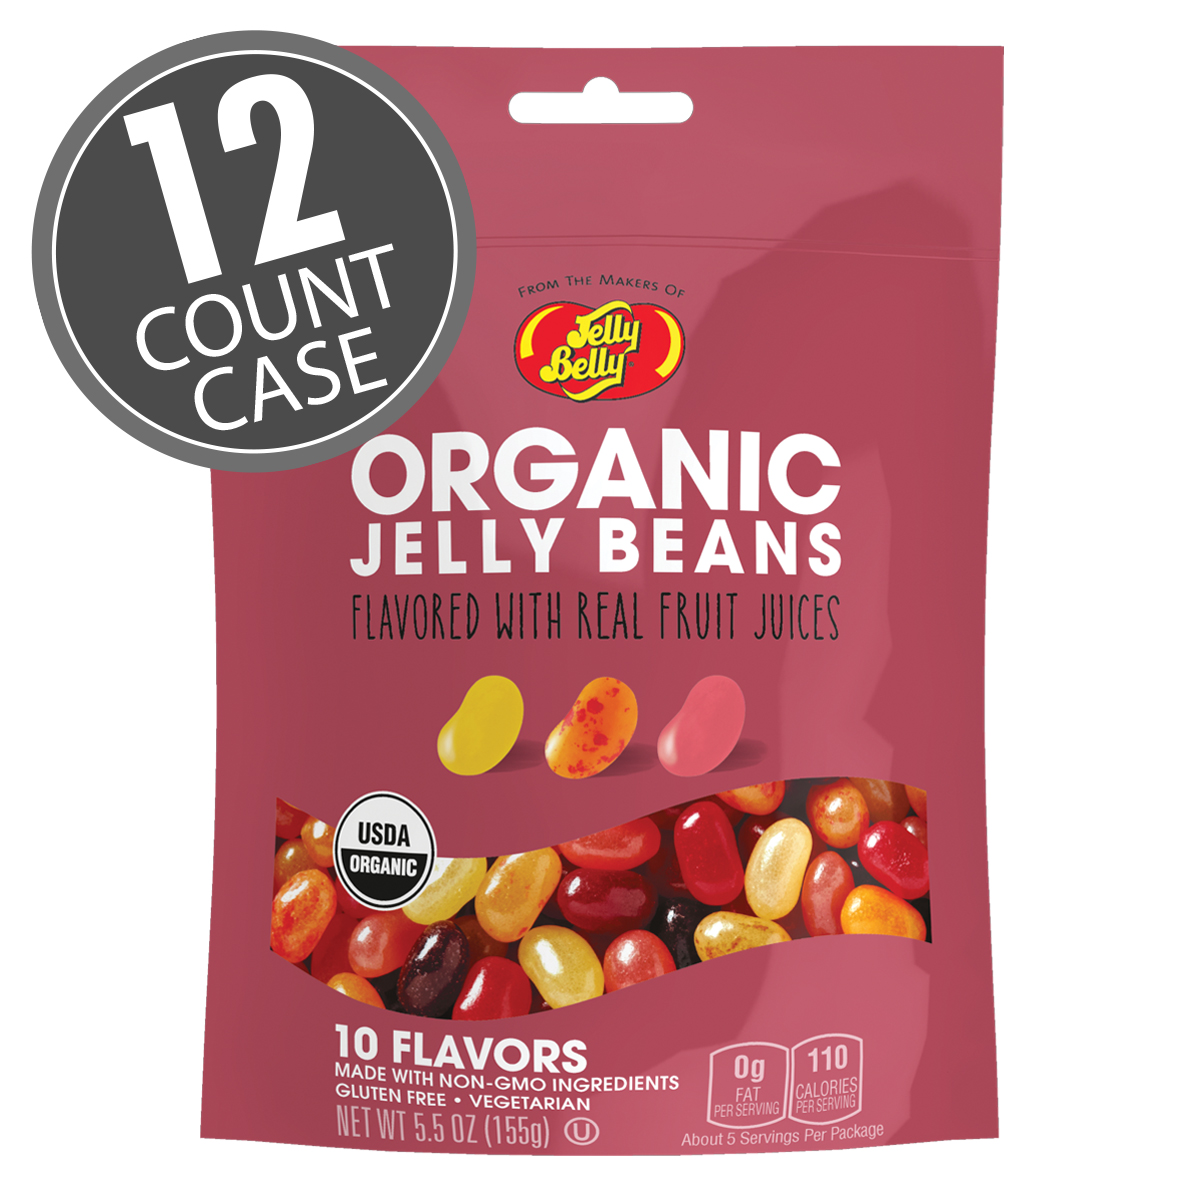 Organic Jelly Beans from the makers of Jelly Belly - 5.5 oz bag - 12 Count Case